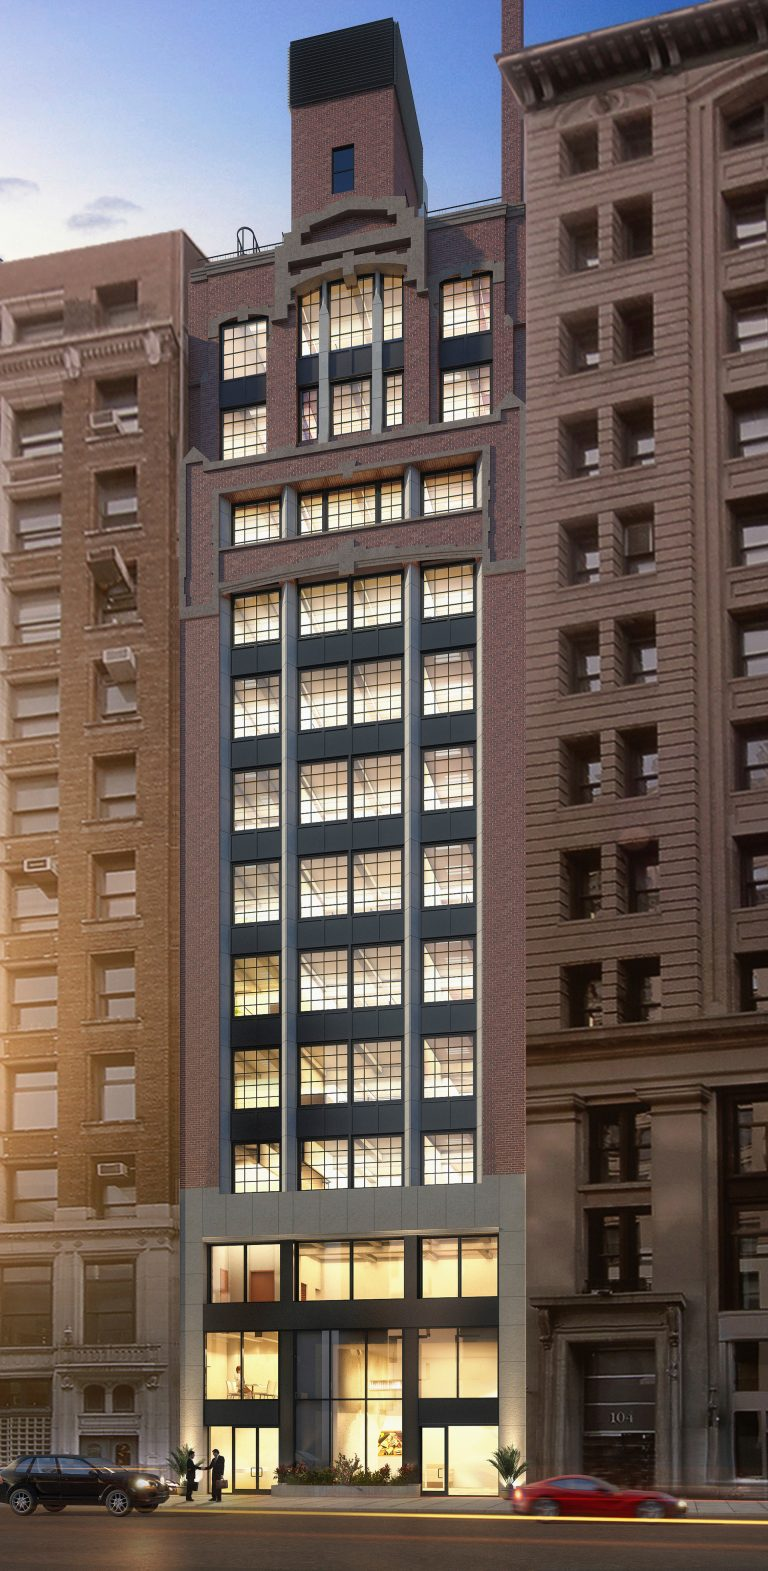 Exterior rendering of 114 East 25th Street before Building Renovation